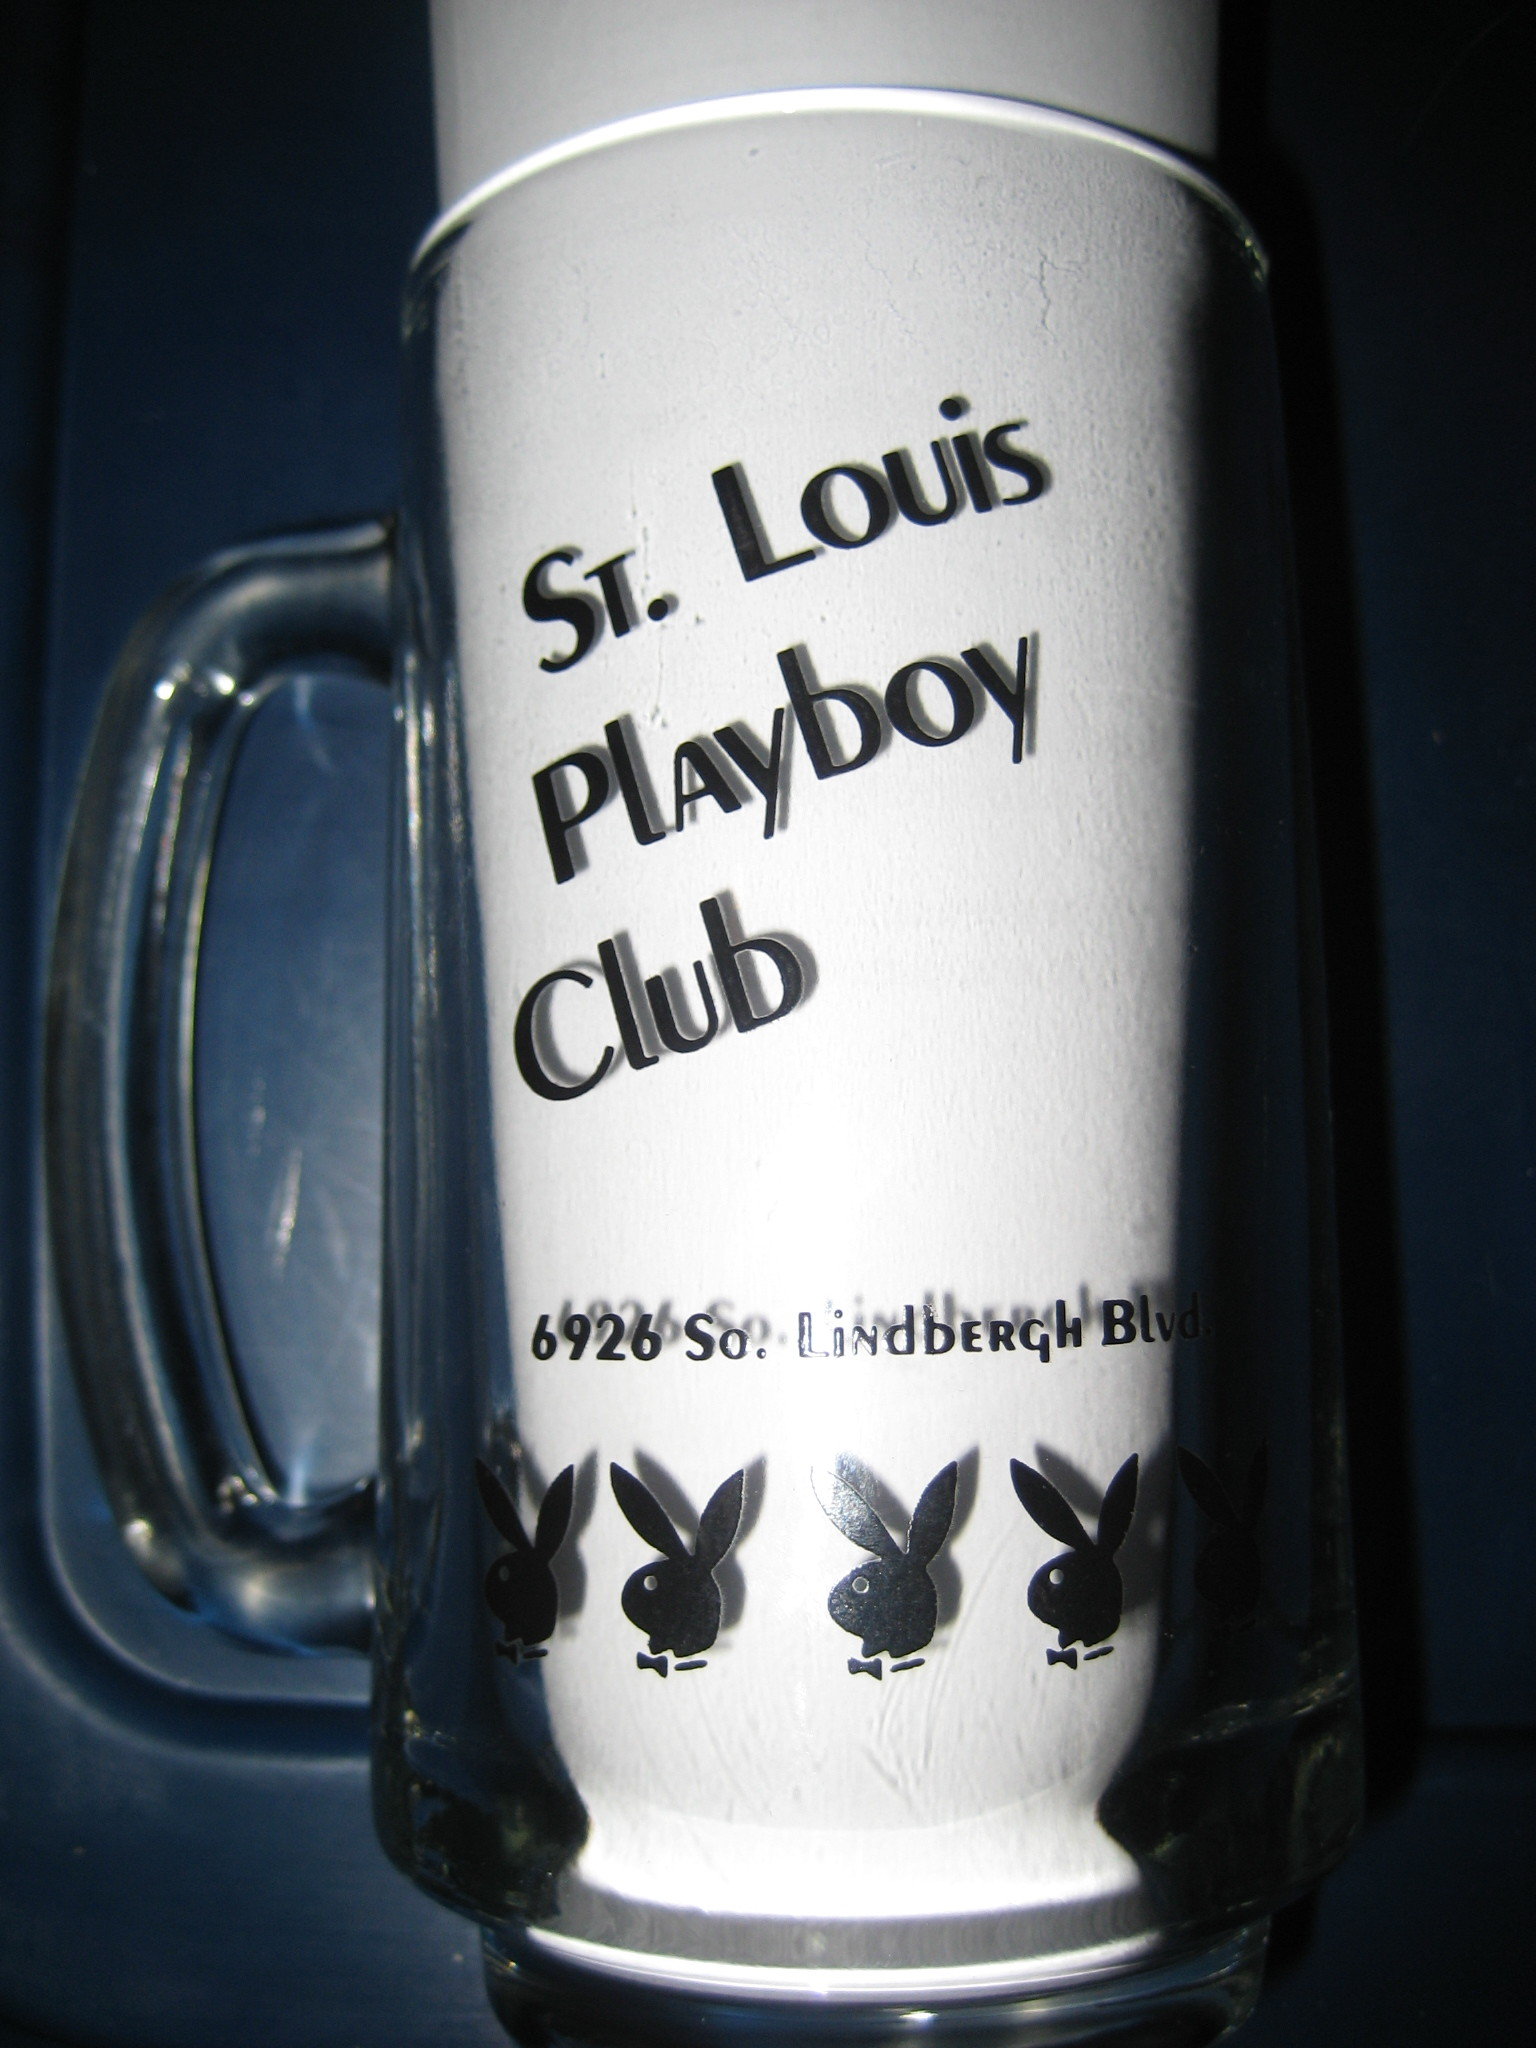 St. Louis Playboy Club